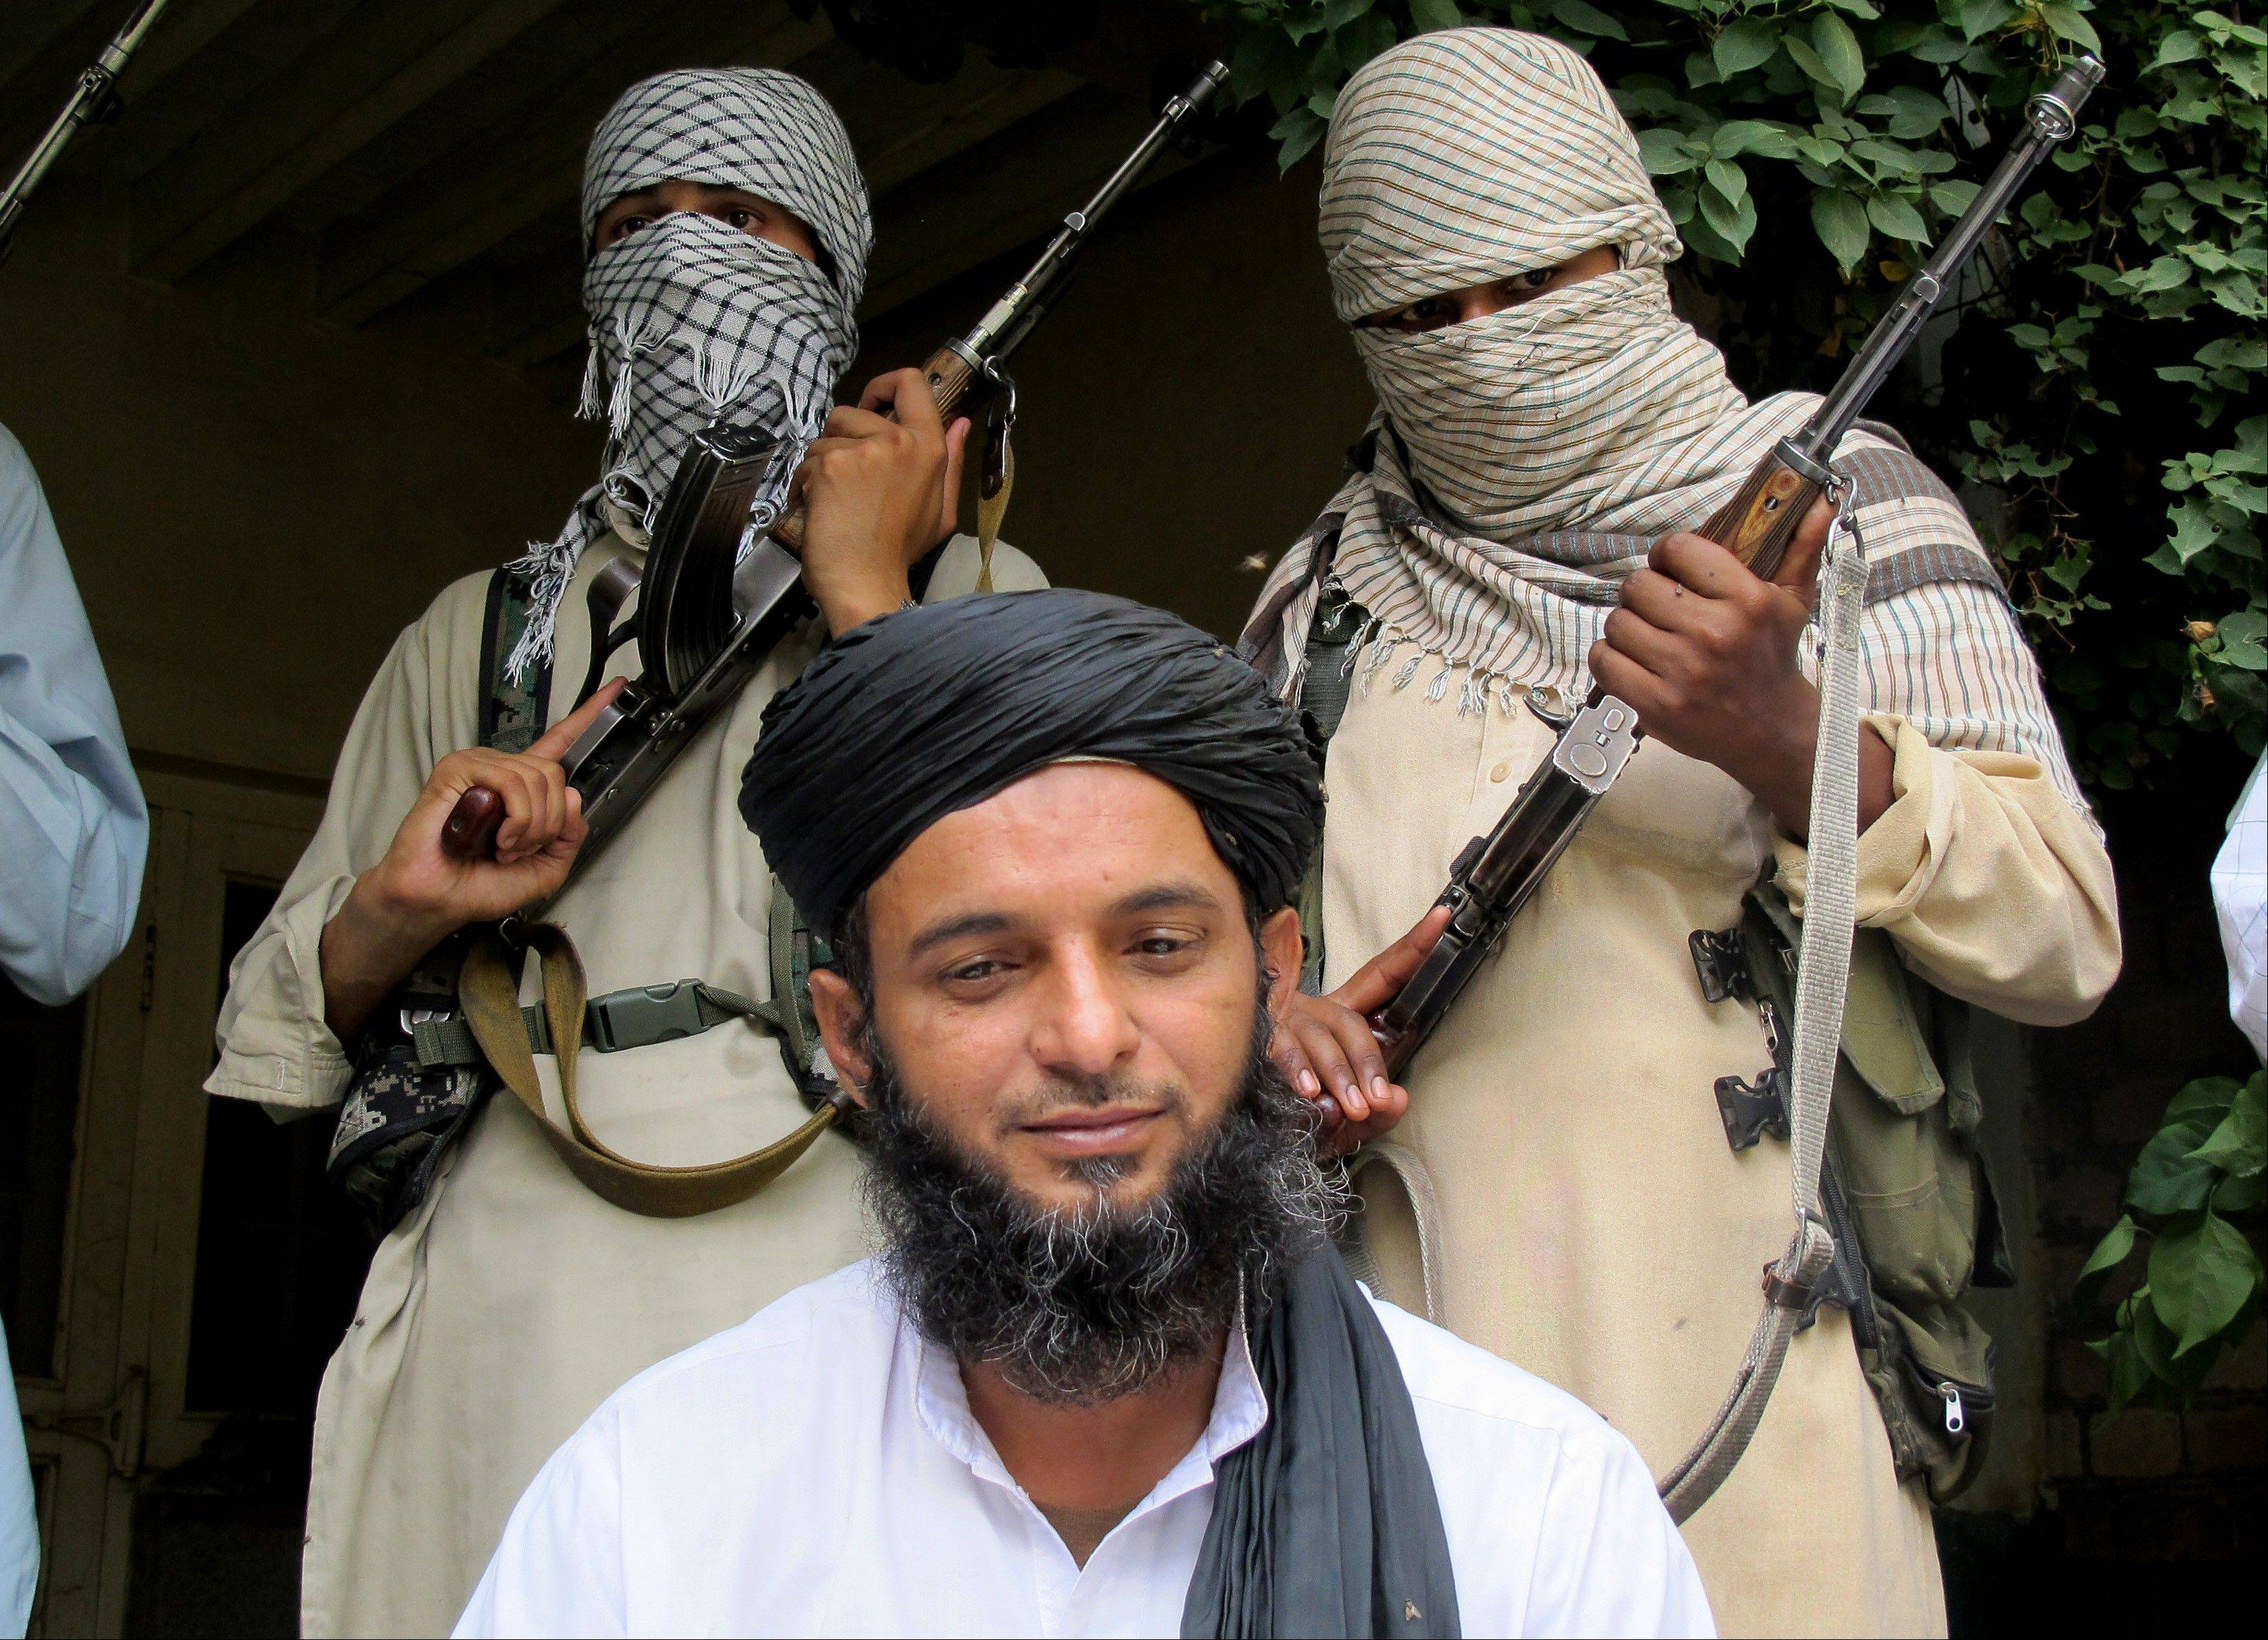 Asmatullah Muawiya, head of the Taliban's faction of fighters from central Punjab province, welcomed the government's recent offer to hold peace talks Thursday, raising the possibility the militant group has changed its stance after shunning negotiations earlier this year.